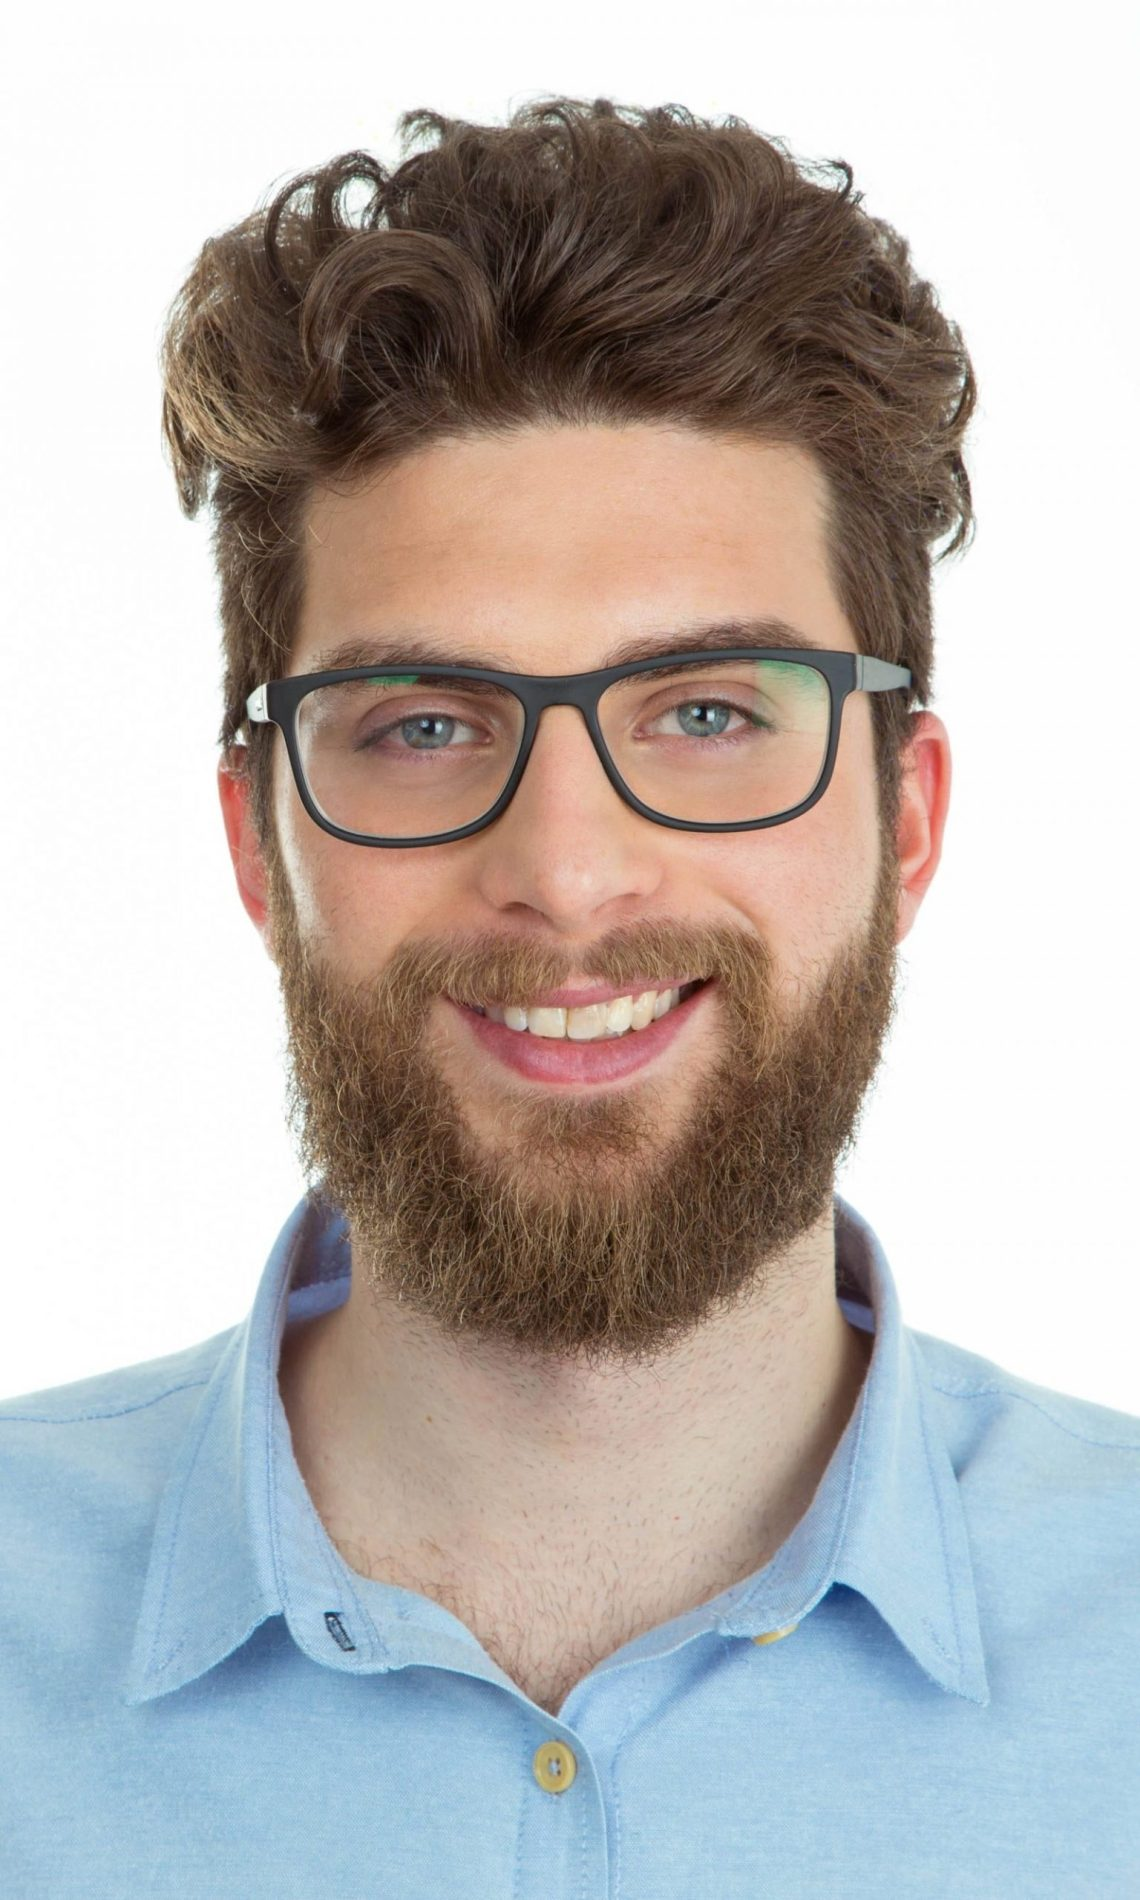 40 Modern Men'S Hairstyles For Curly Hair (That Will Change Medium Mens Curly Hairstyles